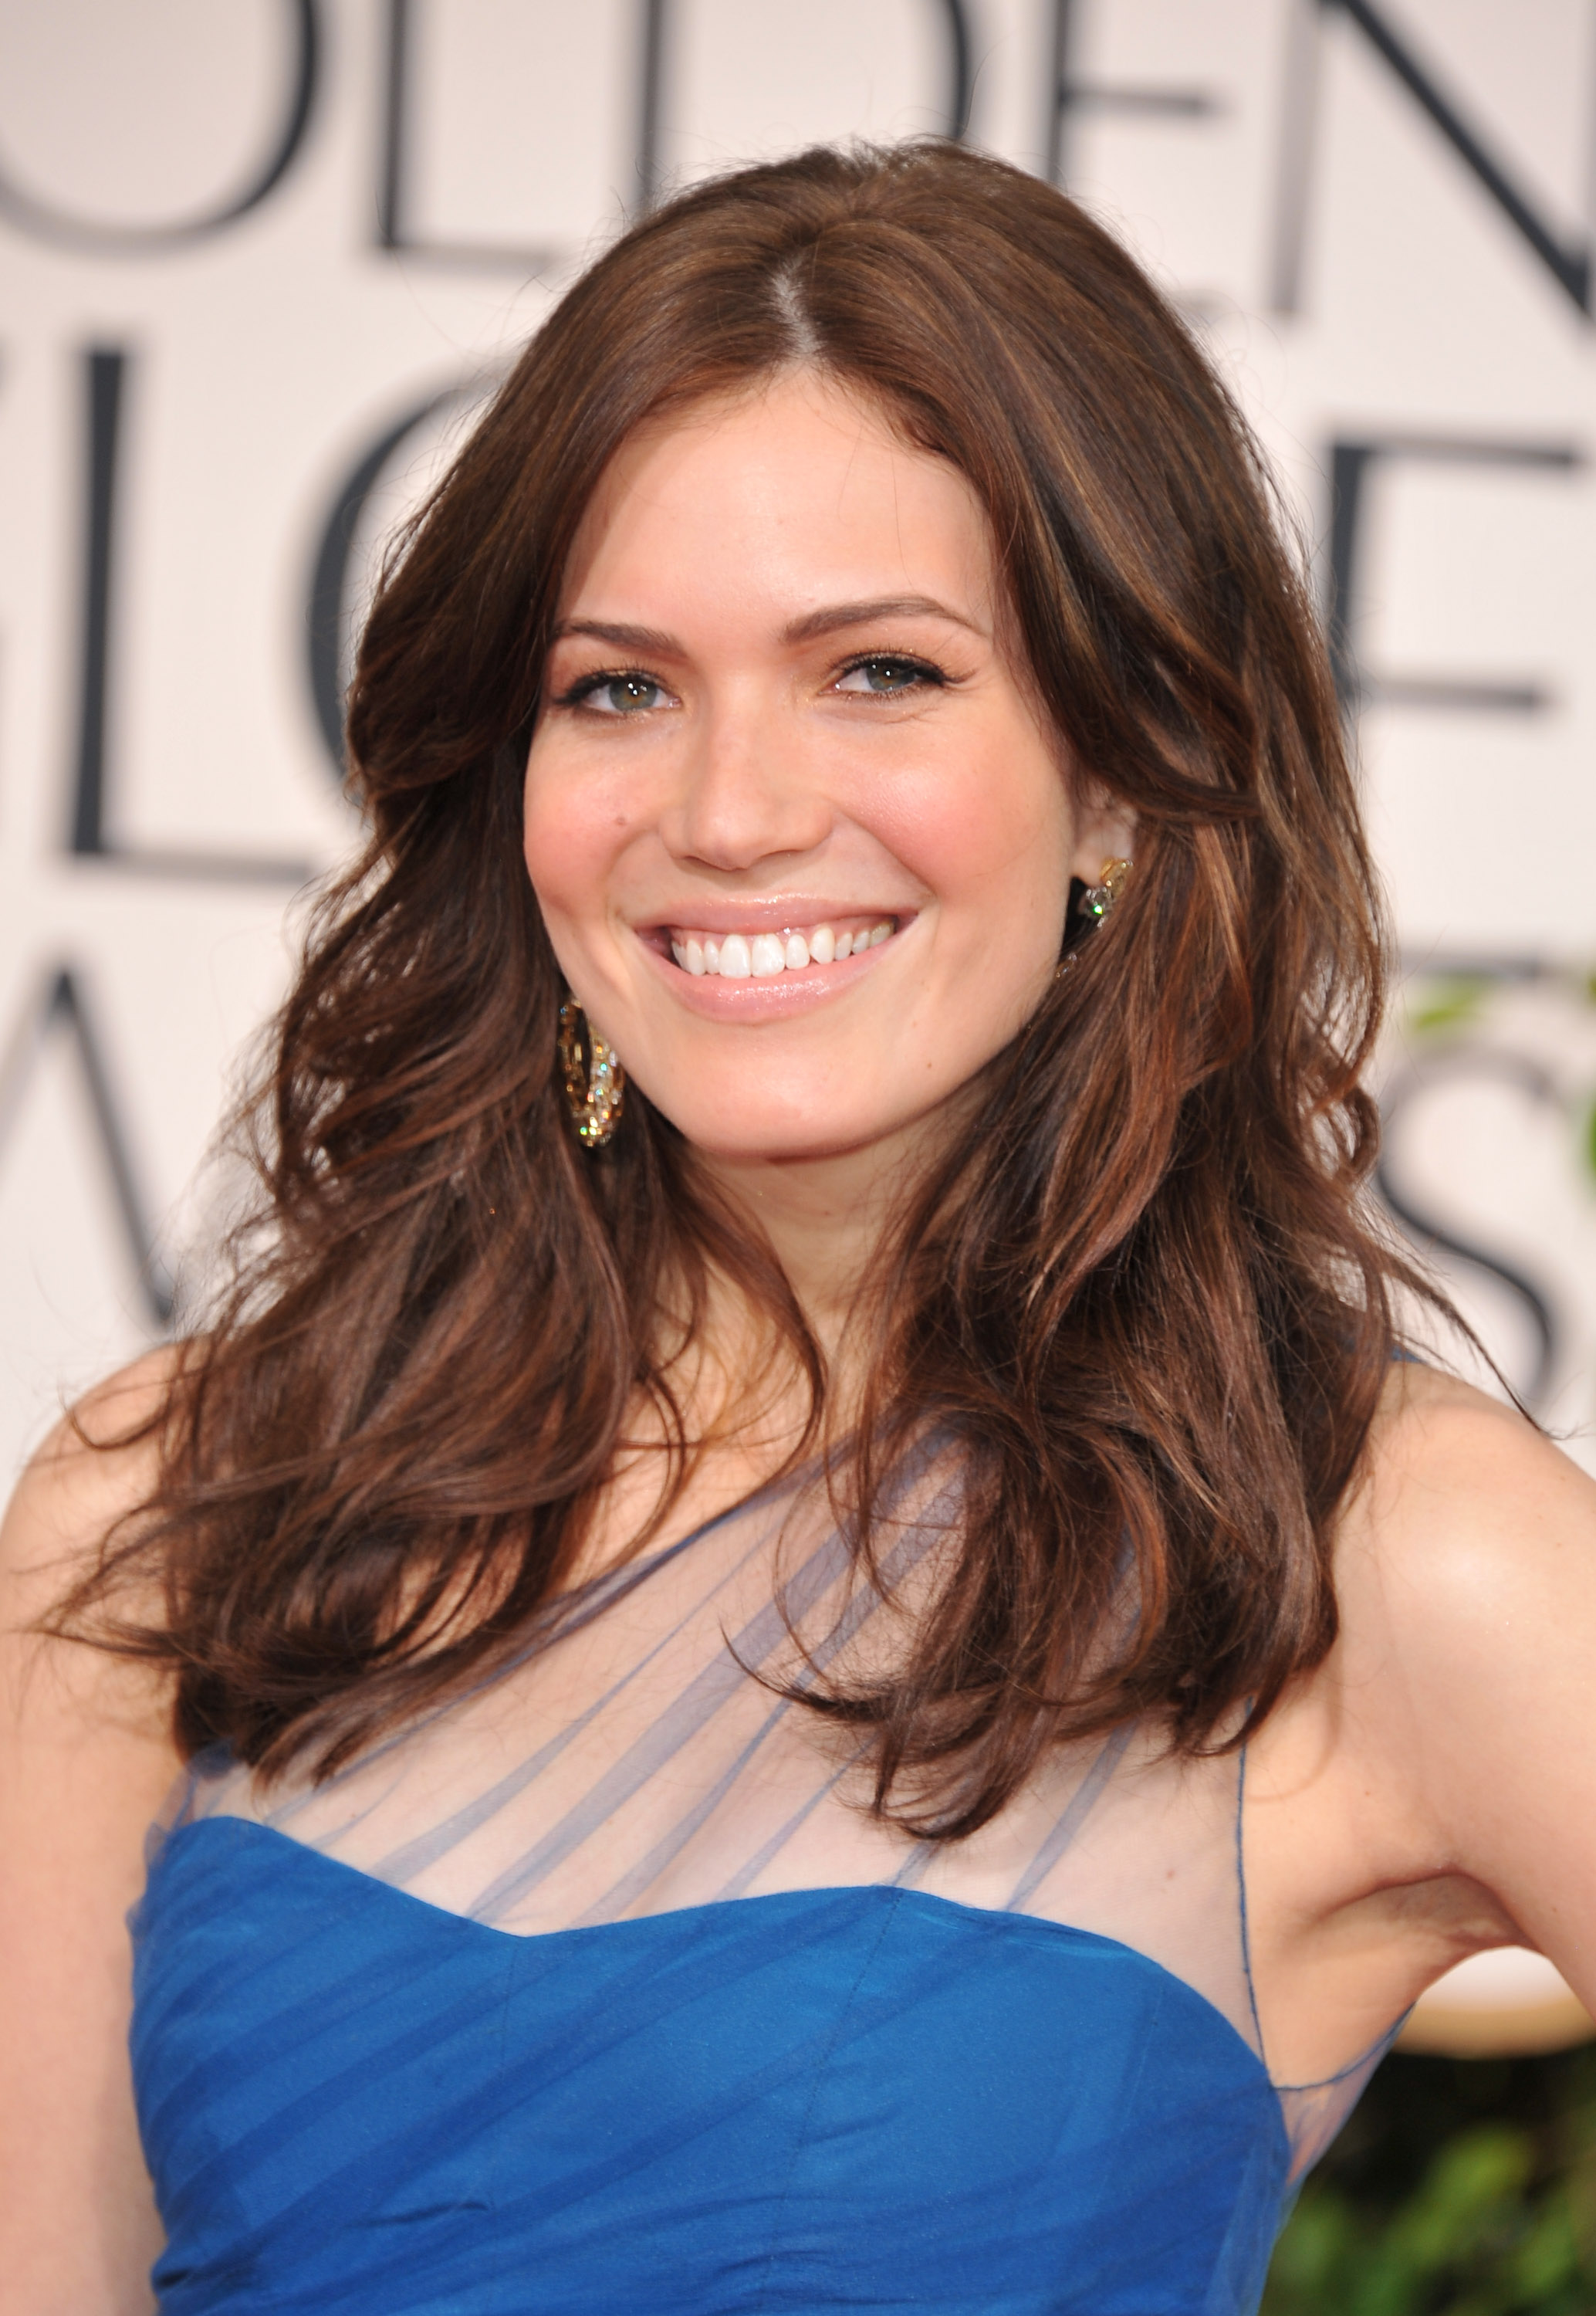 2016 Will Mark Re Emergence Of My Music Mandy Moore